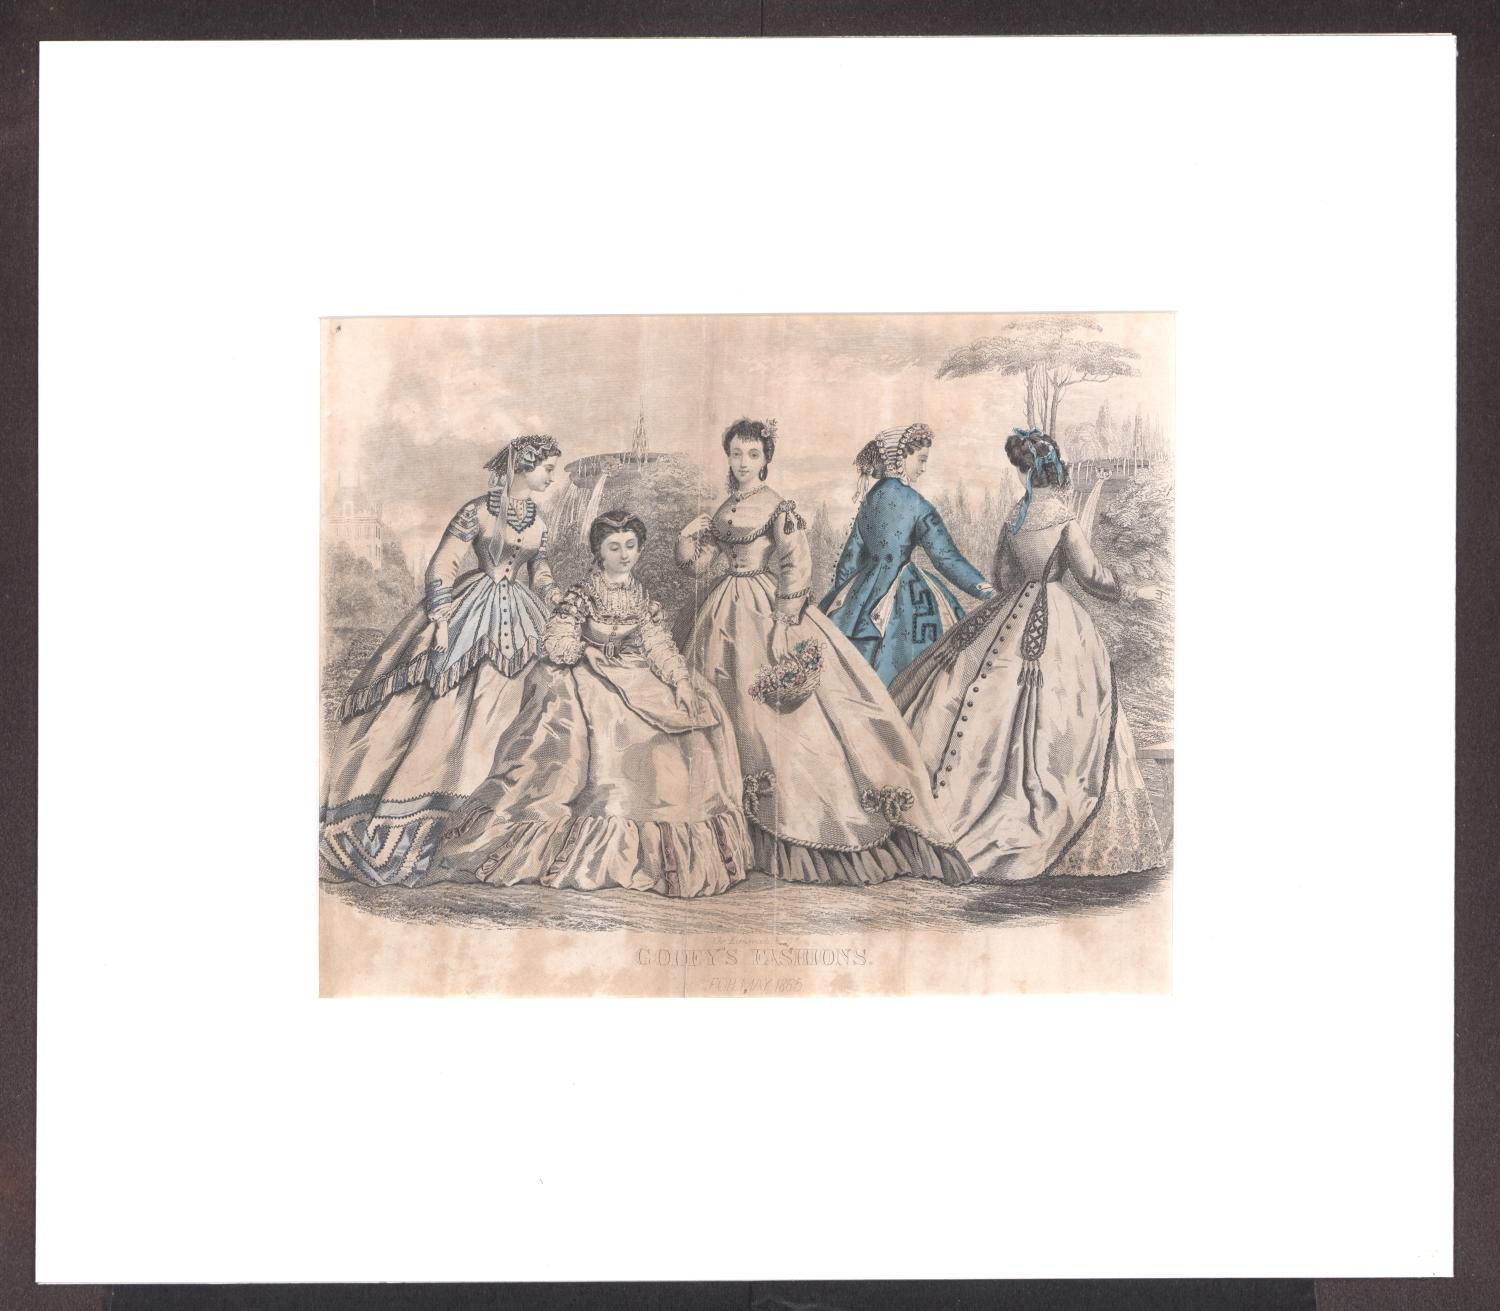 Godey's Fashions for May 1865                                                                                                      [Sequence #]: 1 of 2